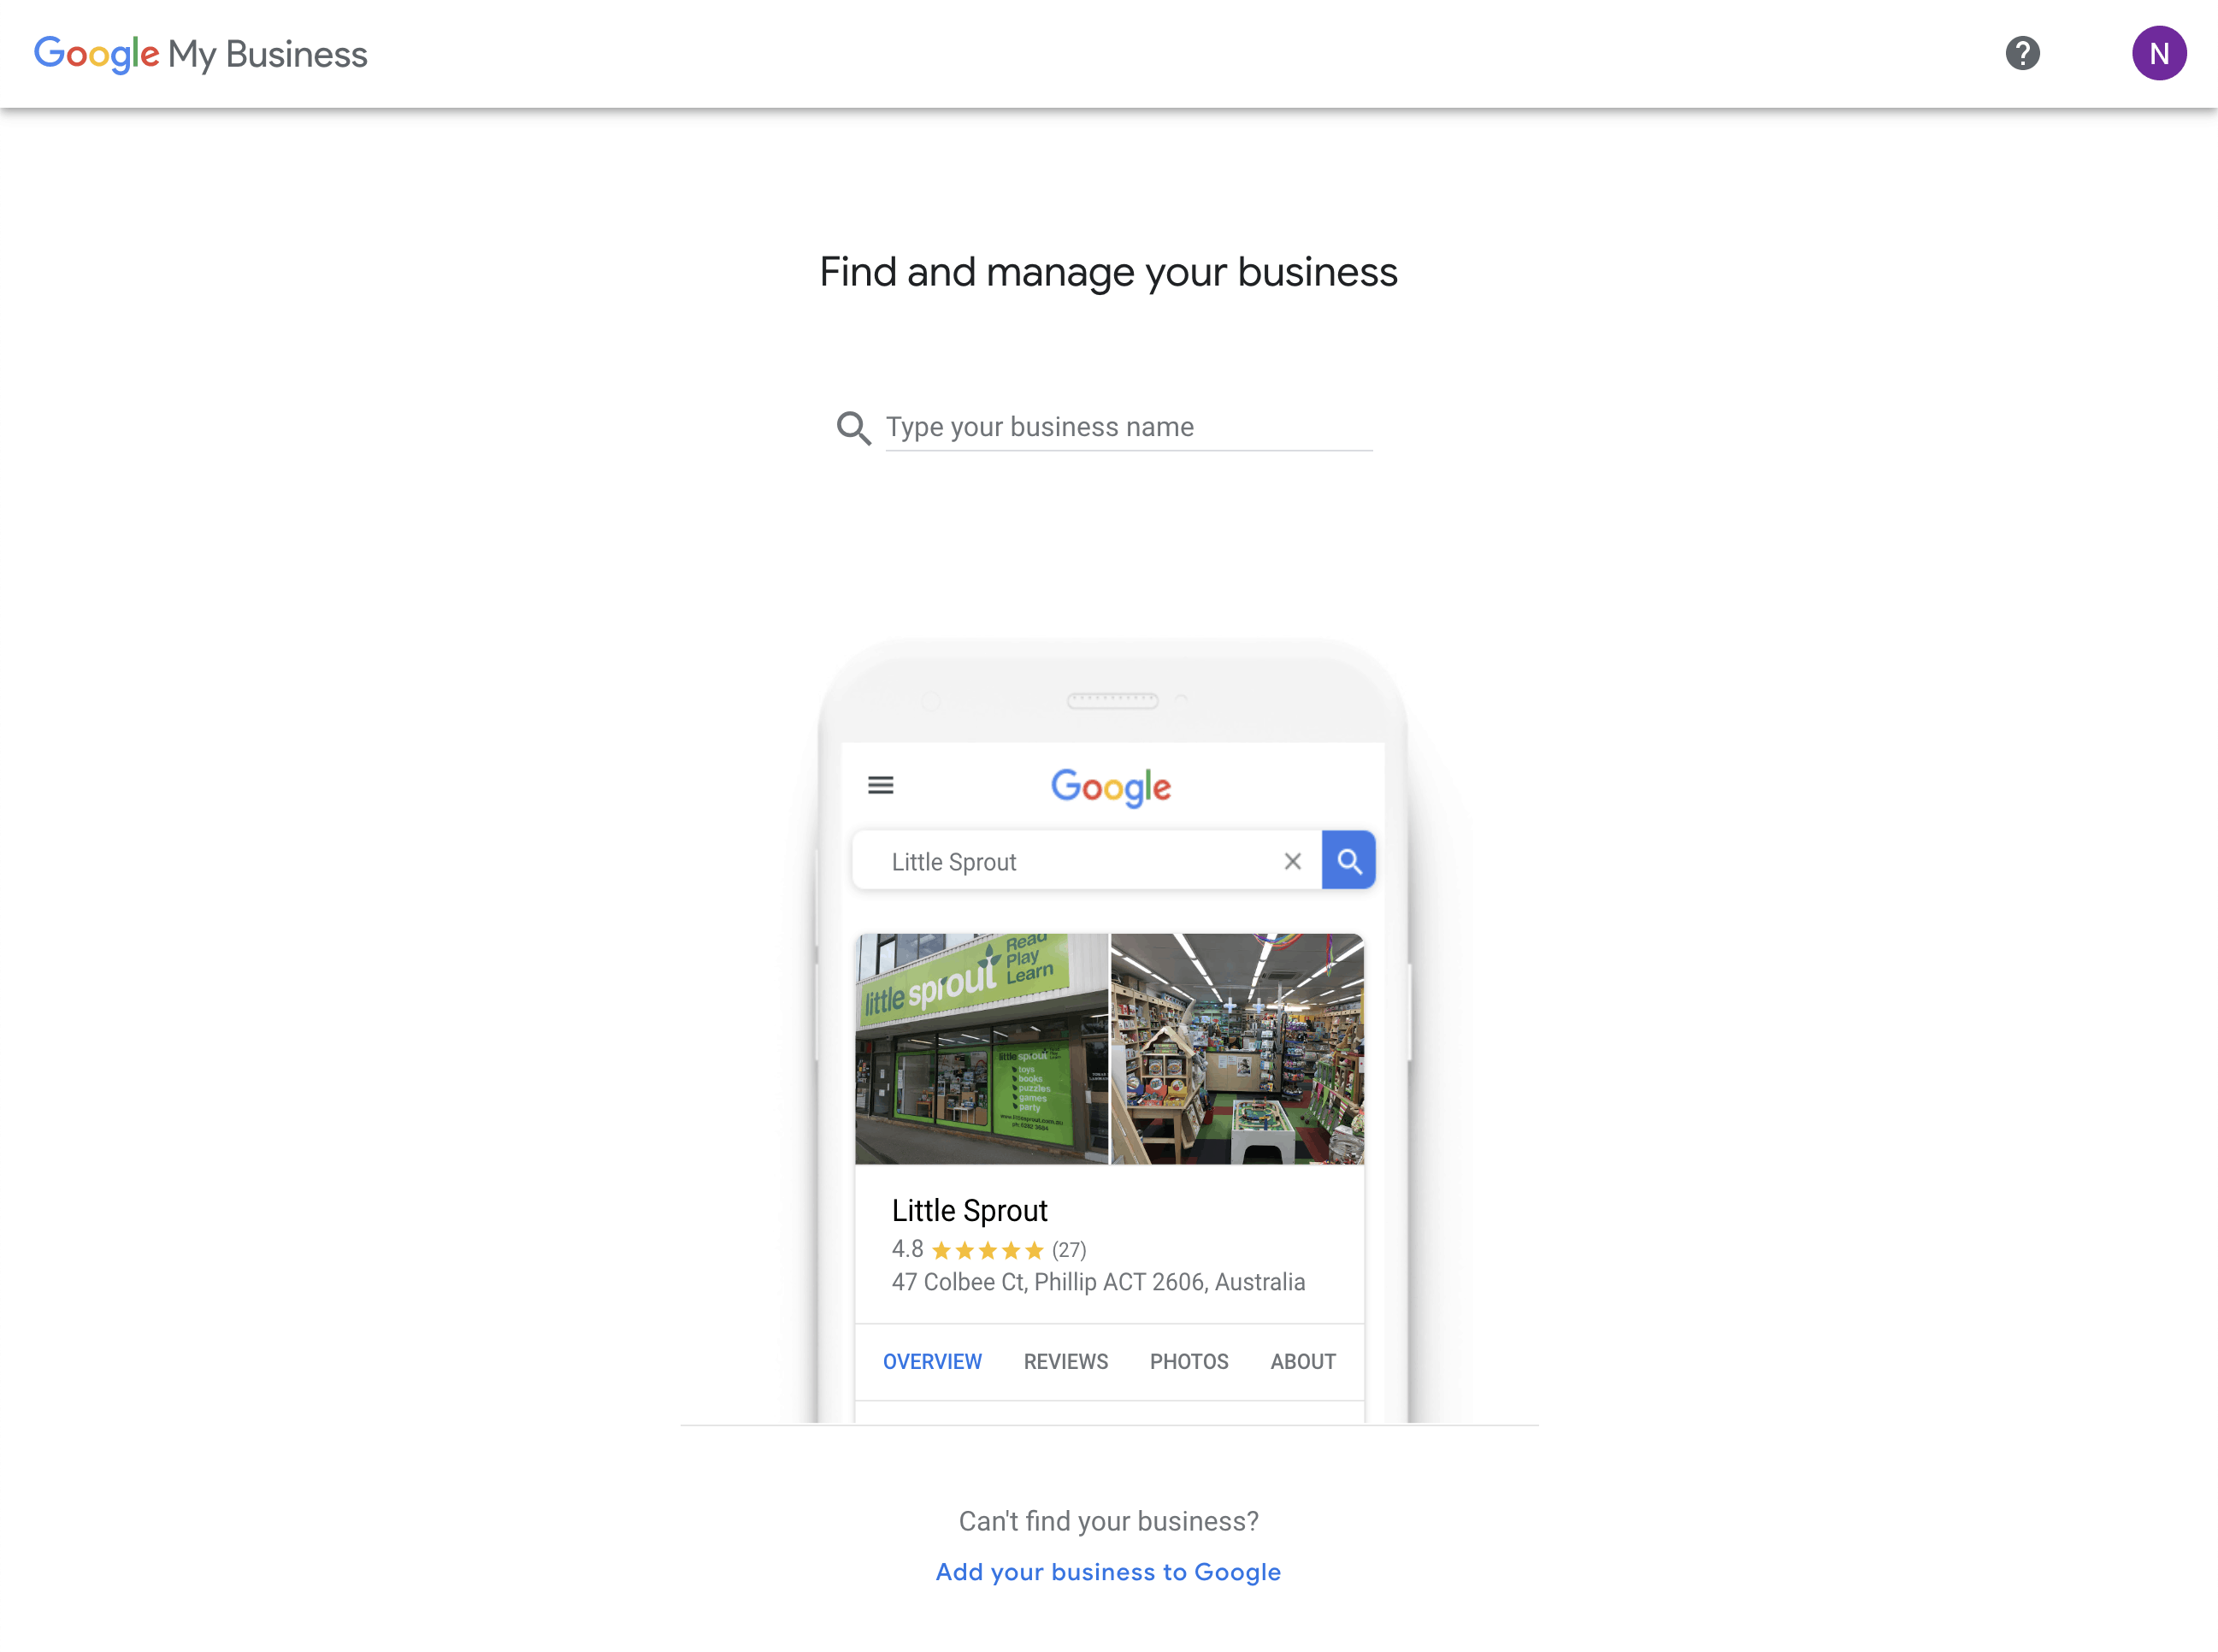 Google My Business - find and manage